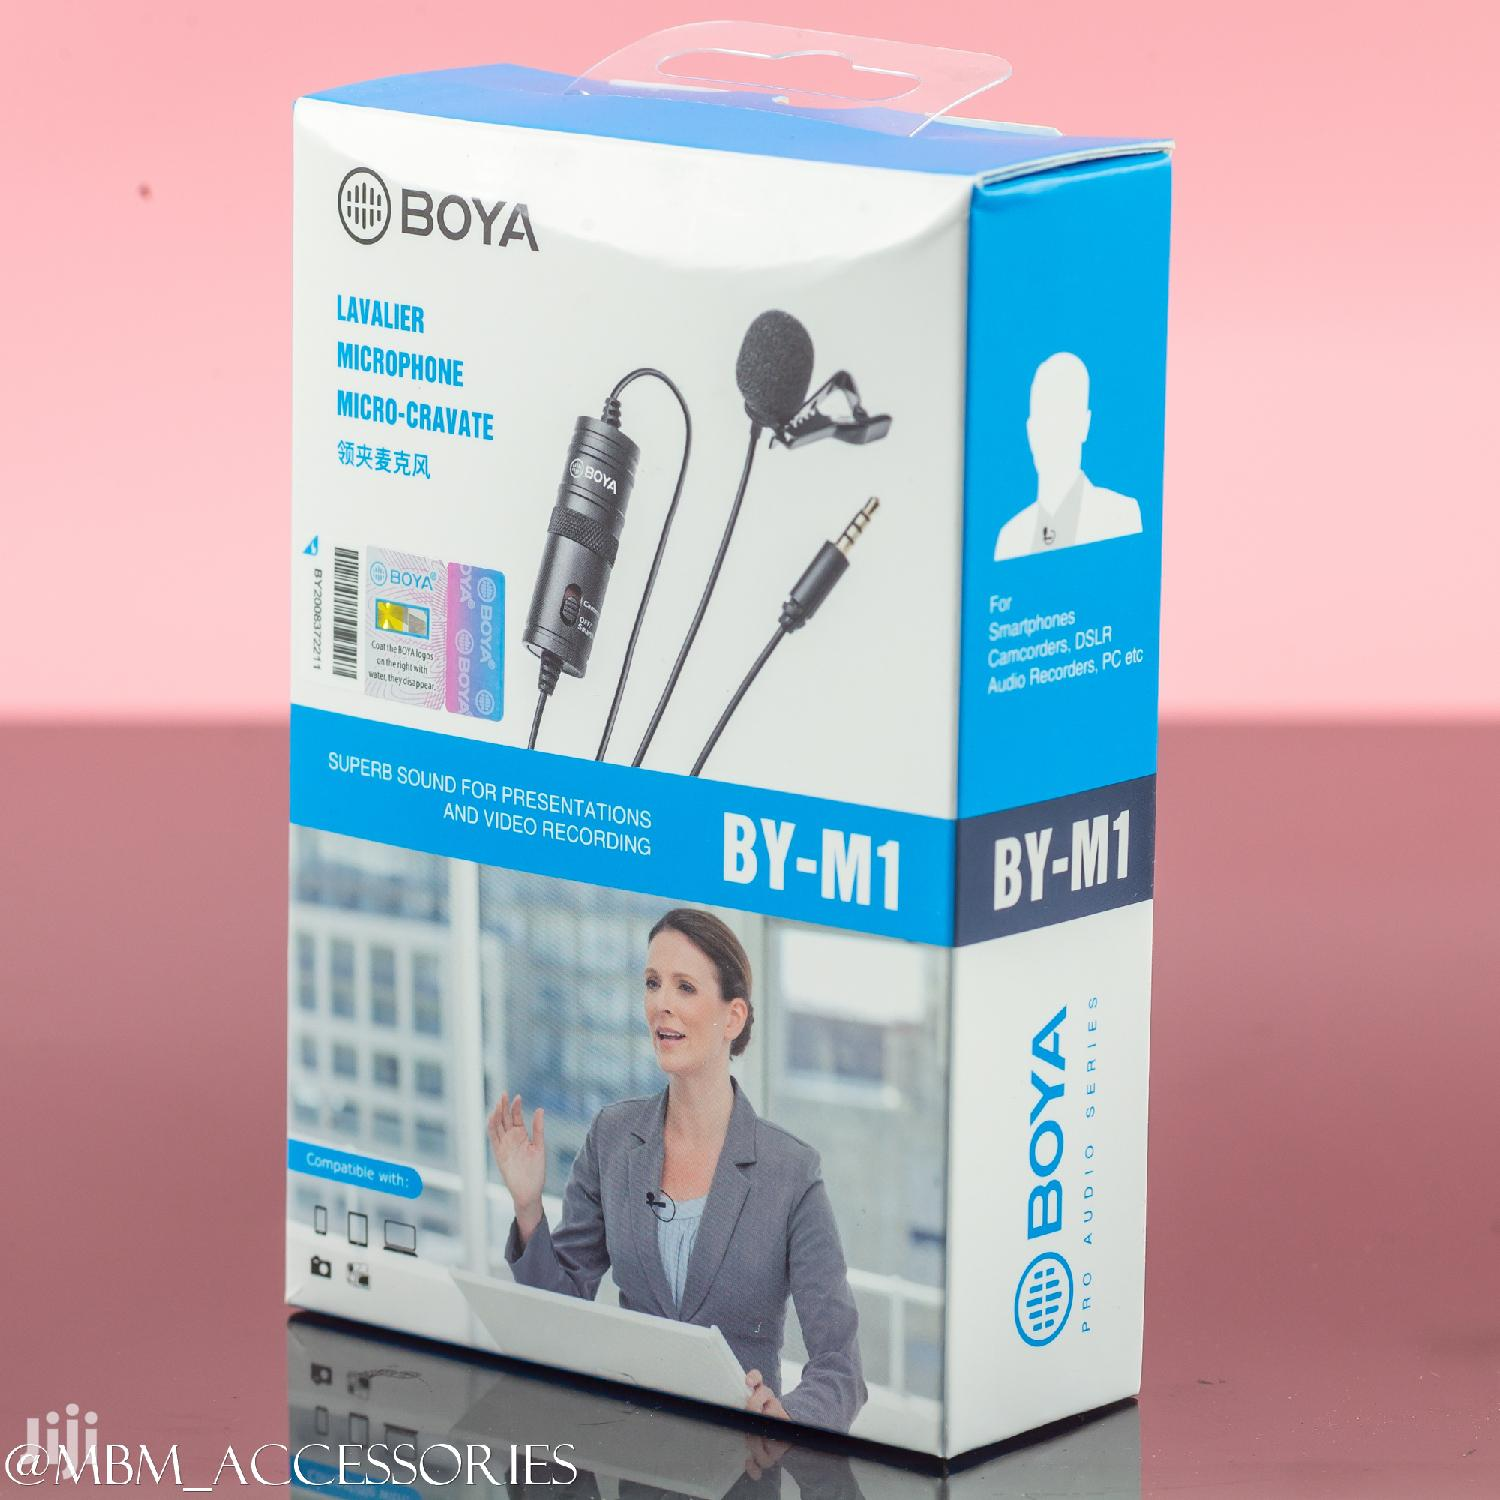 Archive: BOYA BY-M1 Video Record Microphone